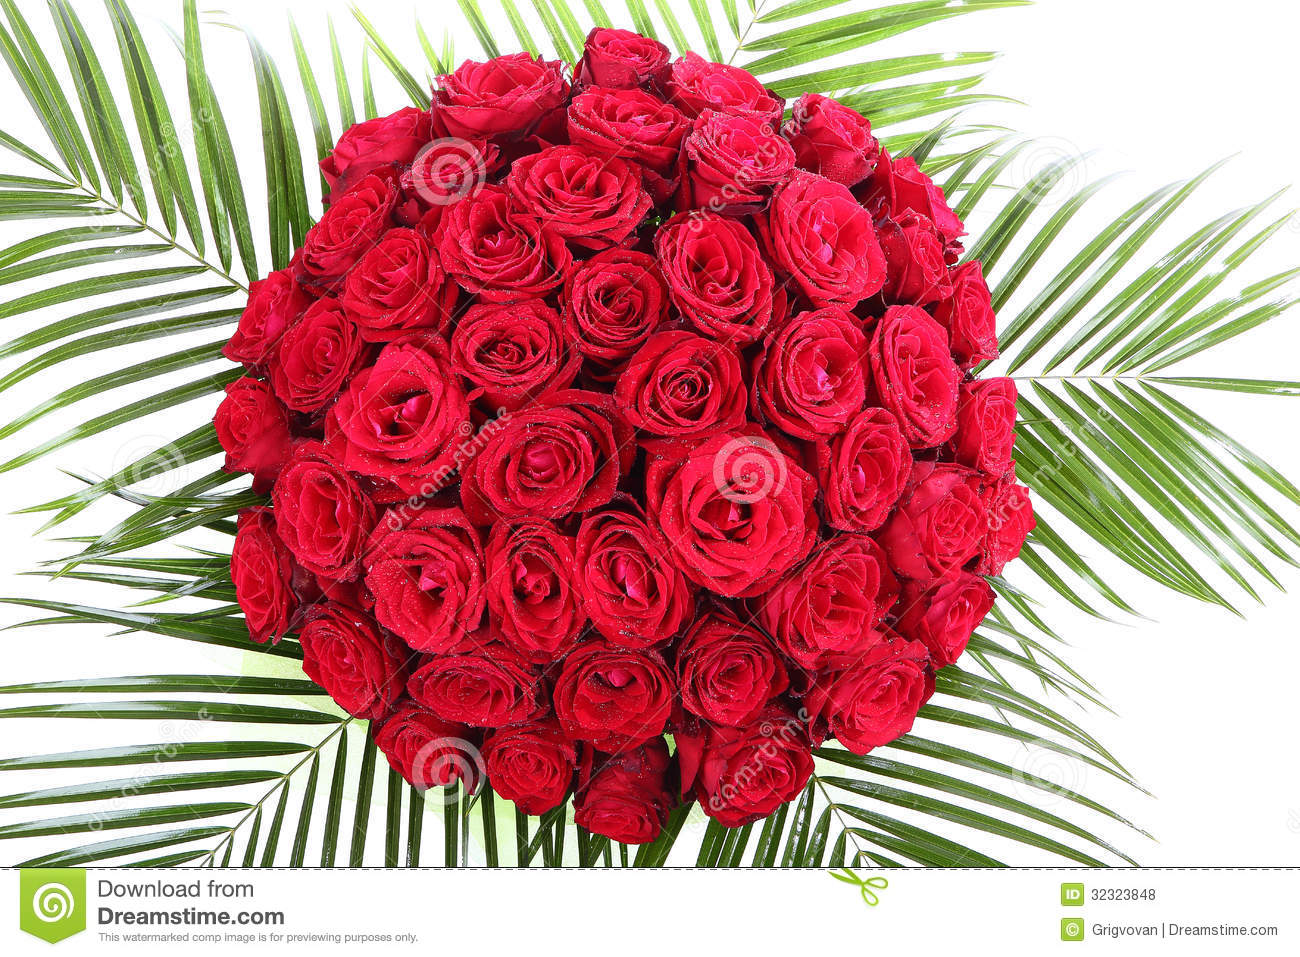 Un bouquet norme des roses rouges l 39 image d 39 isolement for Bouquets de roses